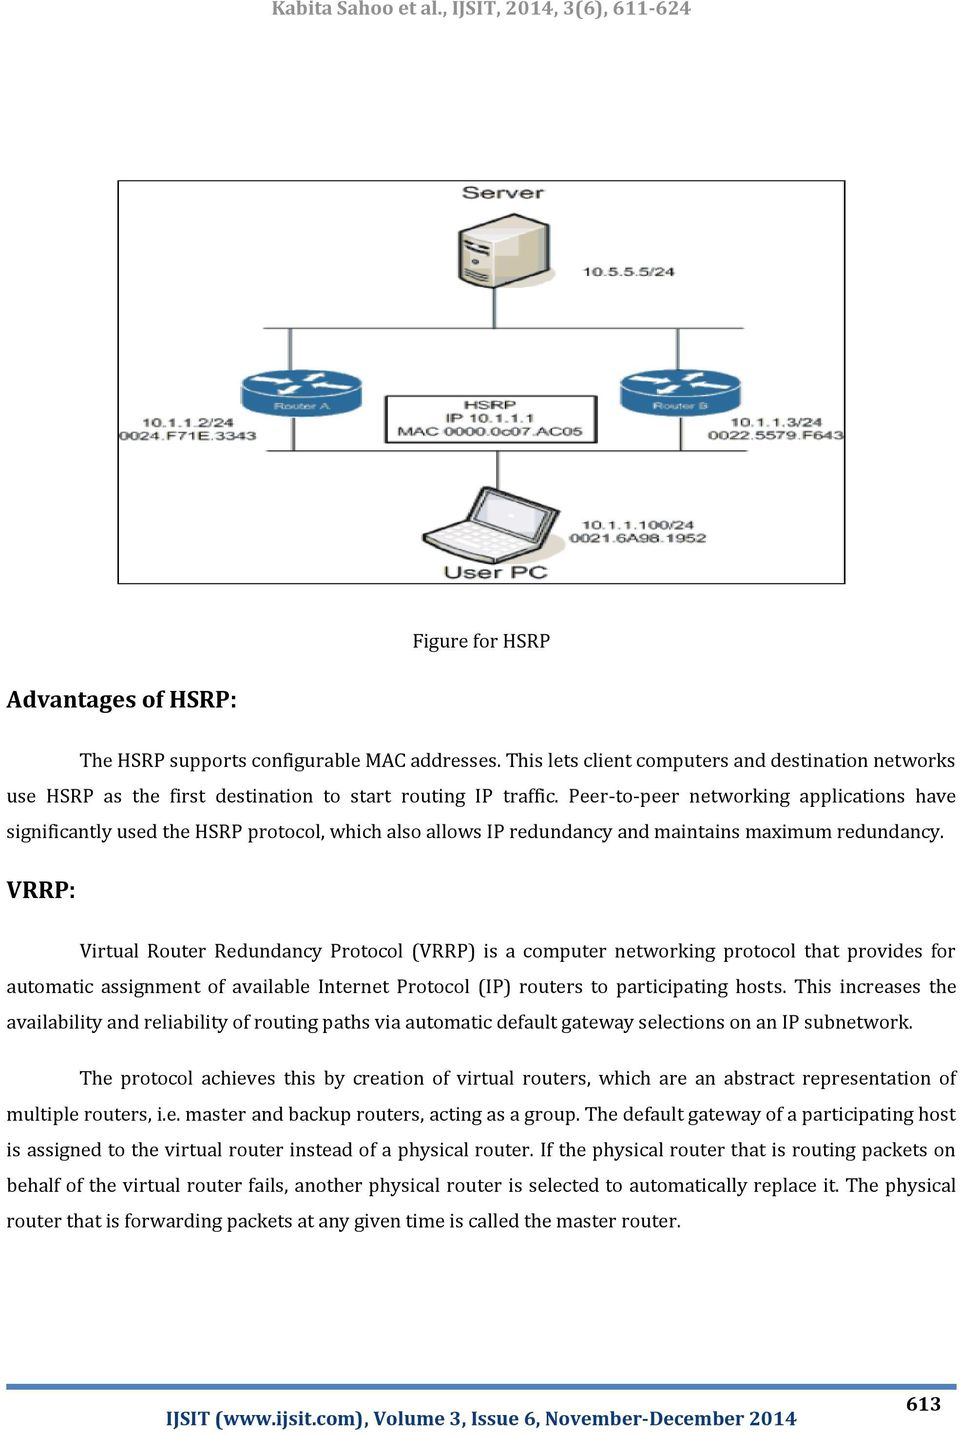 VRRP: Virtual Router Redundancy Protocol (VRRP) is a computer networking protocol that provides for automatic assignment of available Internet Protocol (IP) routers to participating hosts.